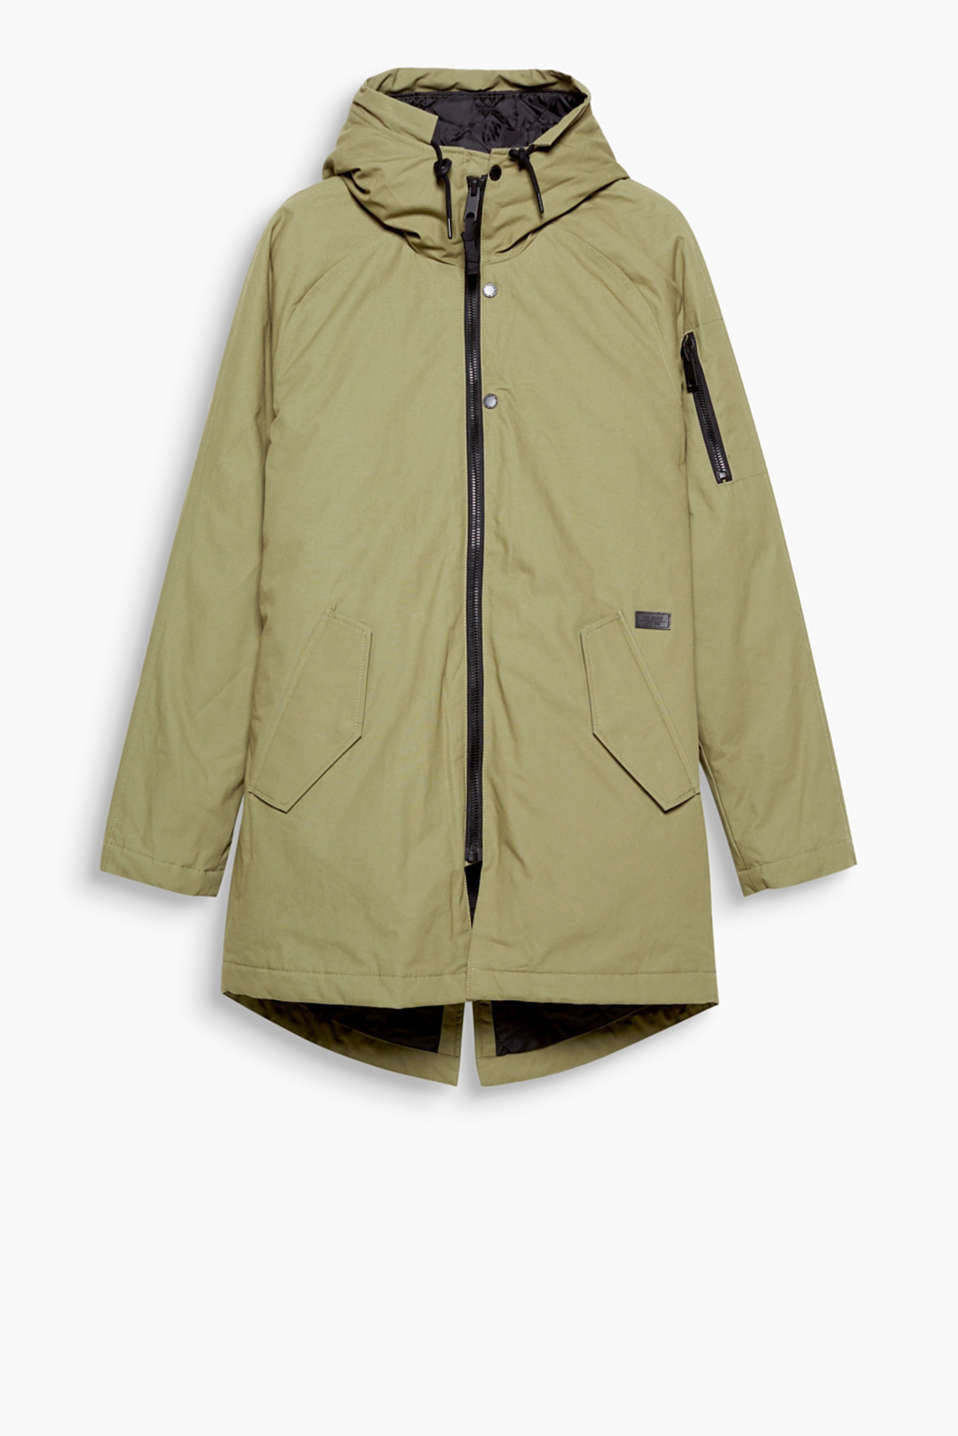 Keep cool, stay warm! On-trend hooded parka for the cold season